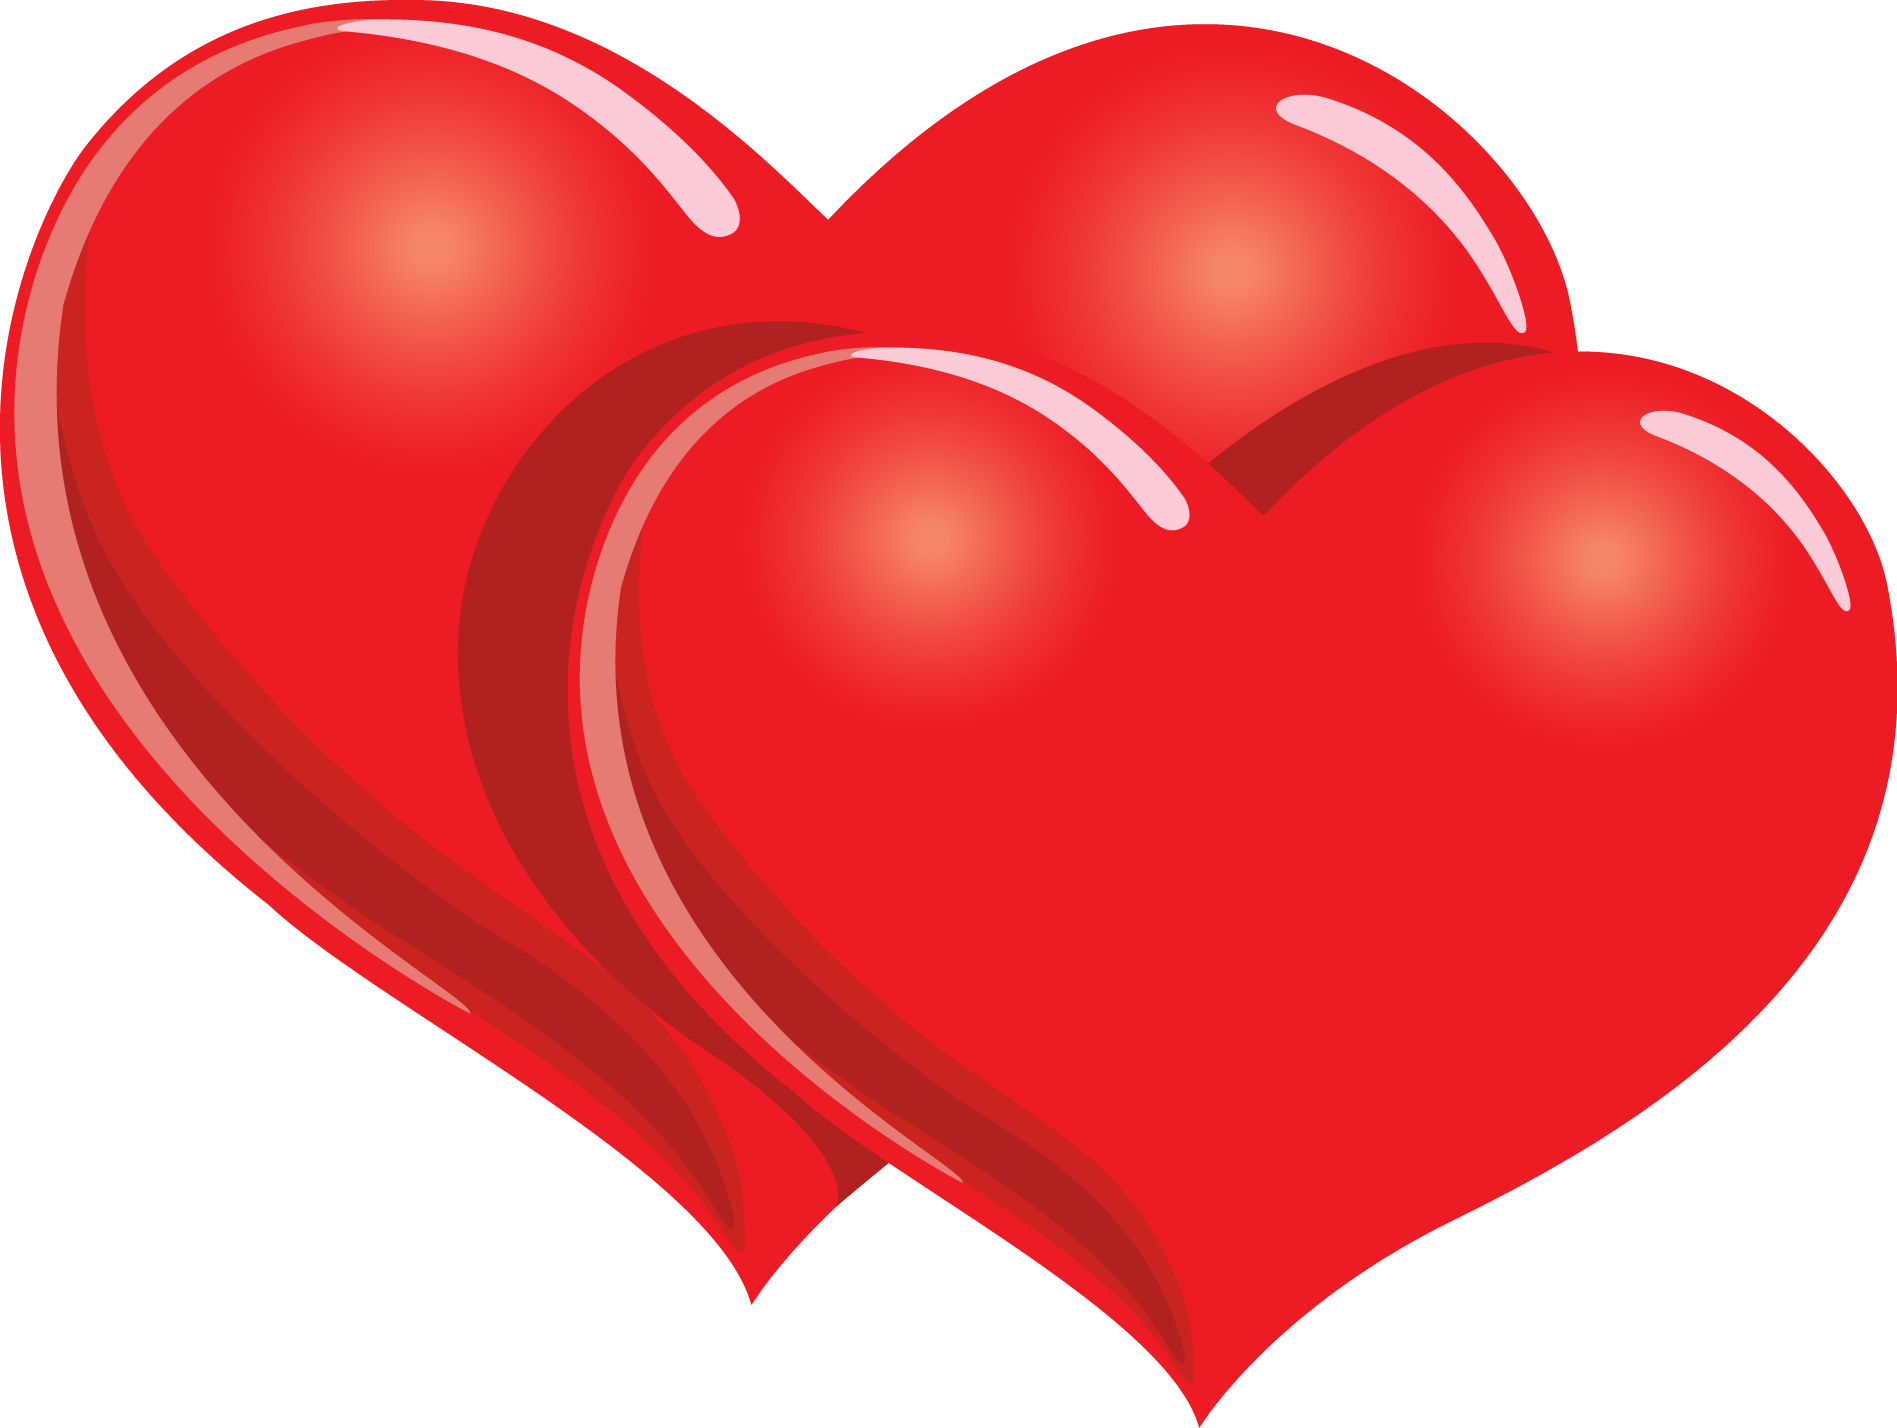 2-red-heart | The Feronia Project - Heart HD PNG